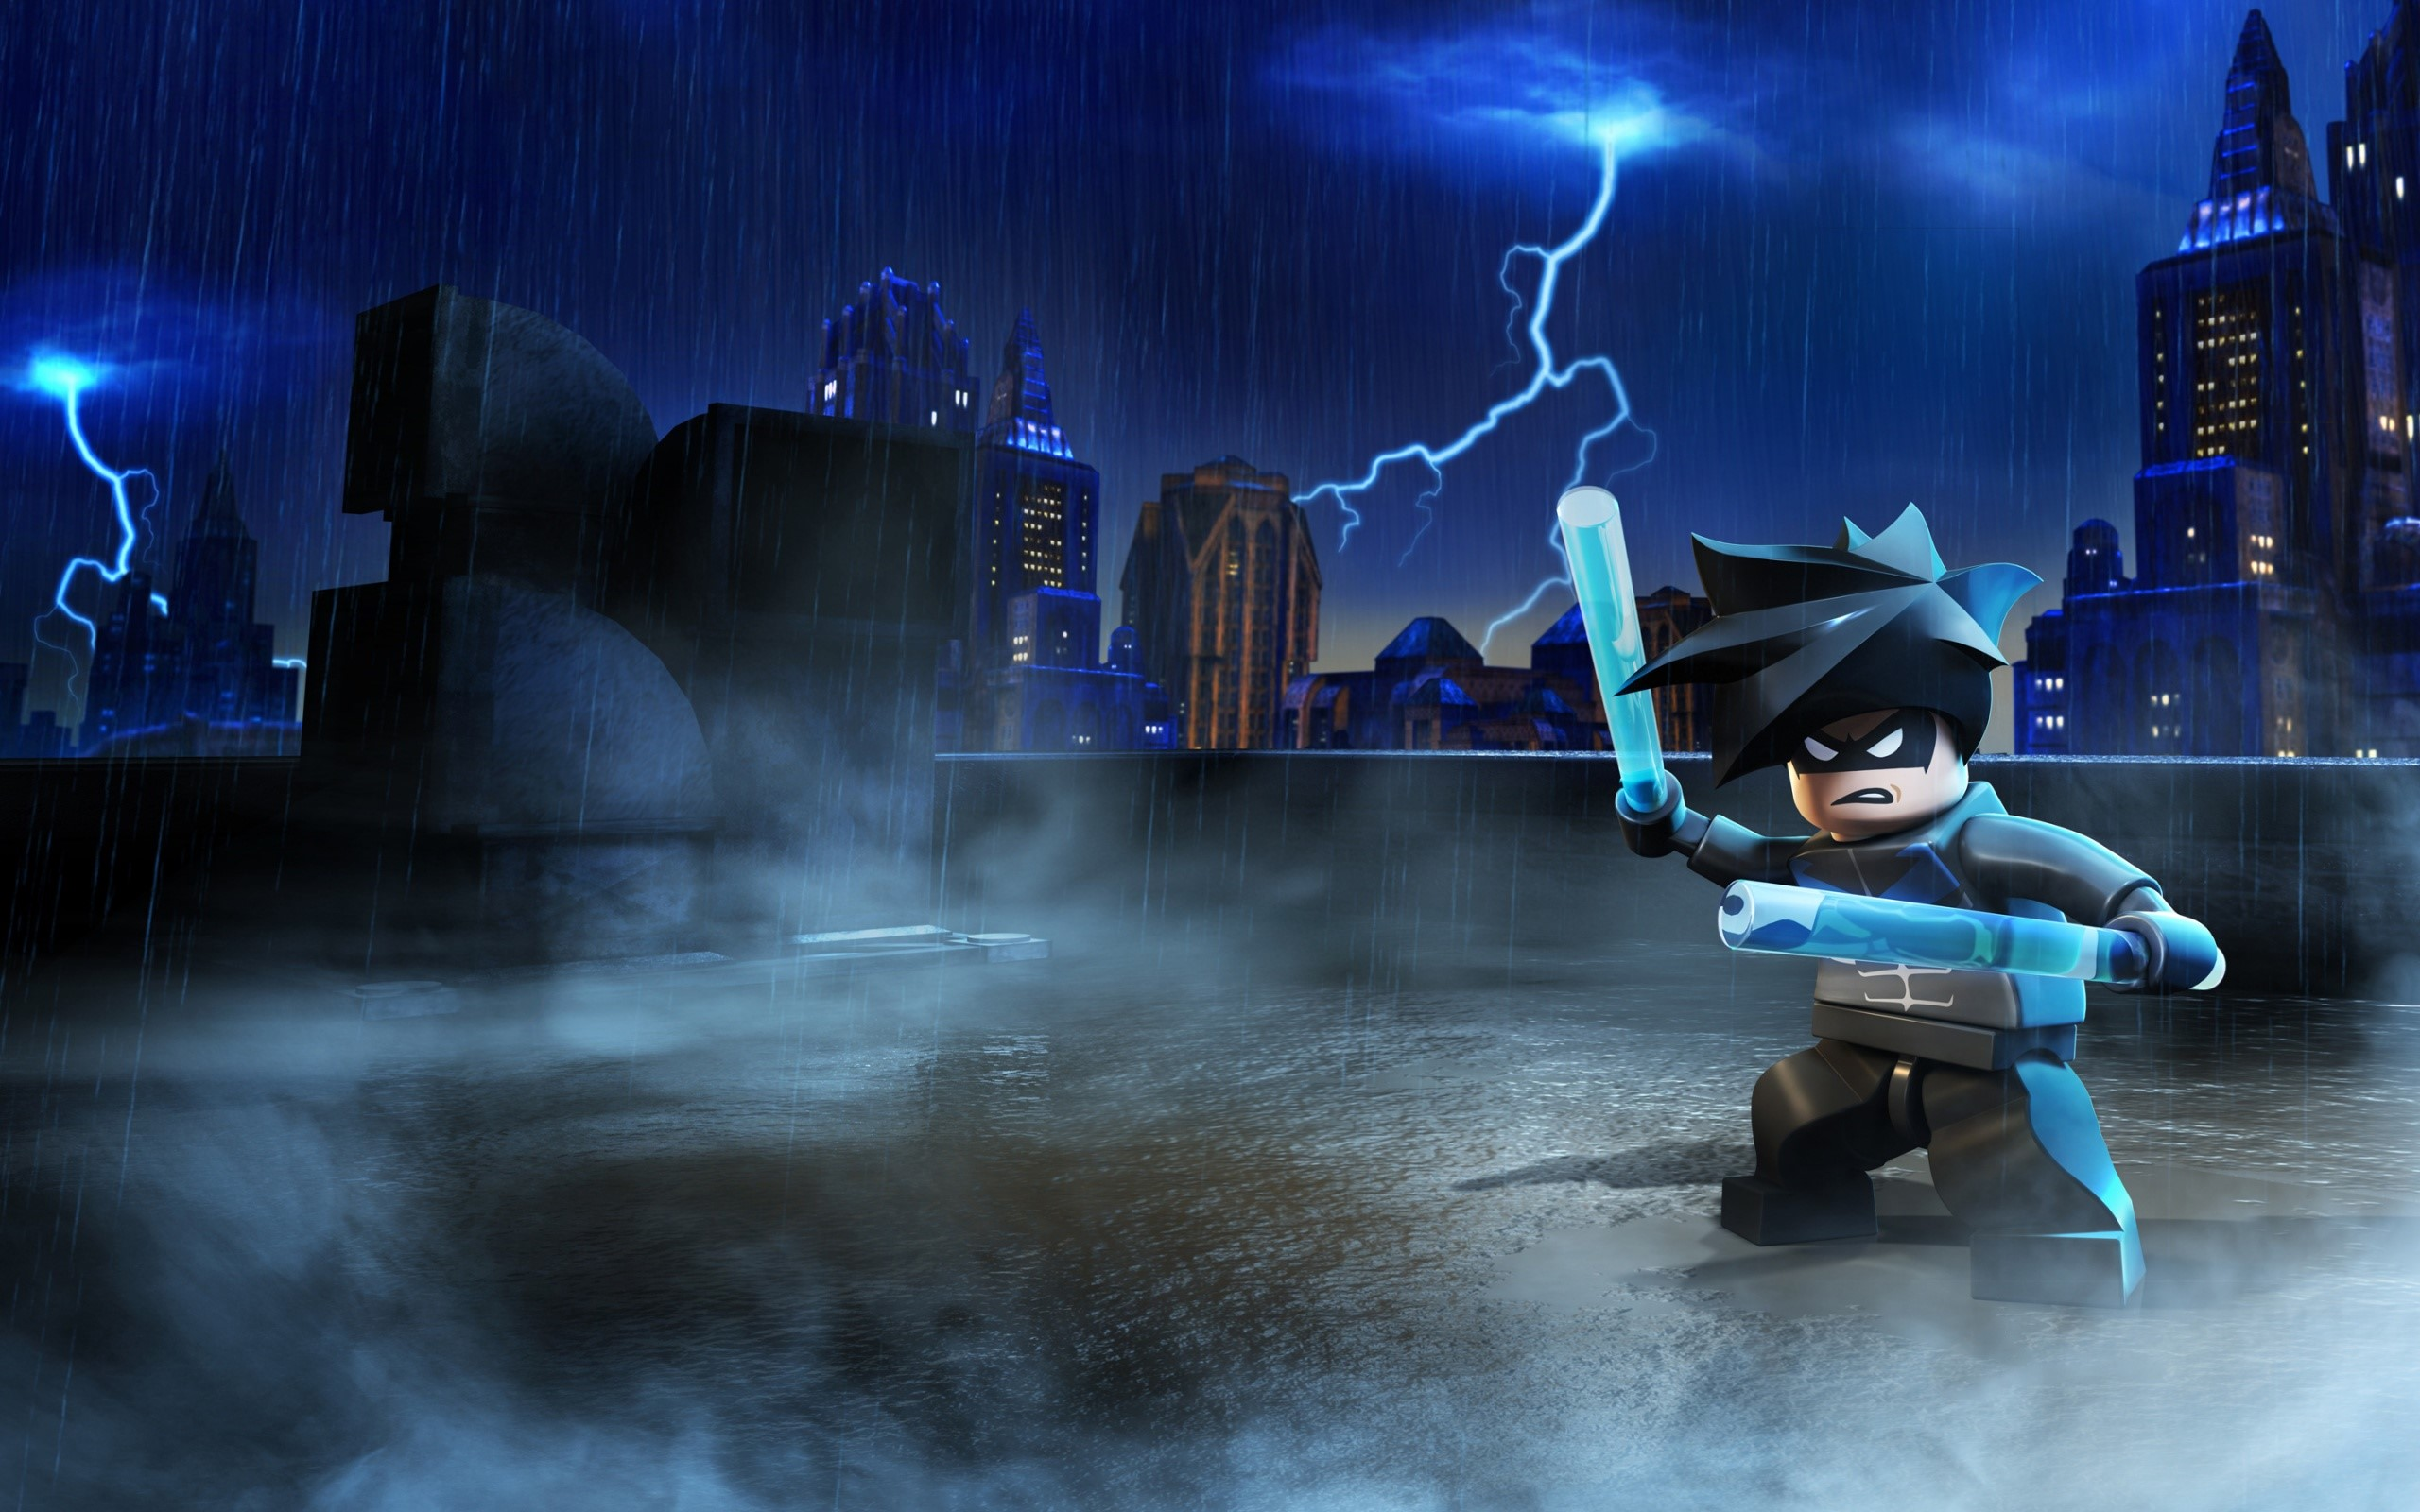 Wallpaper Batman en Lego Images